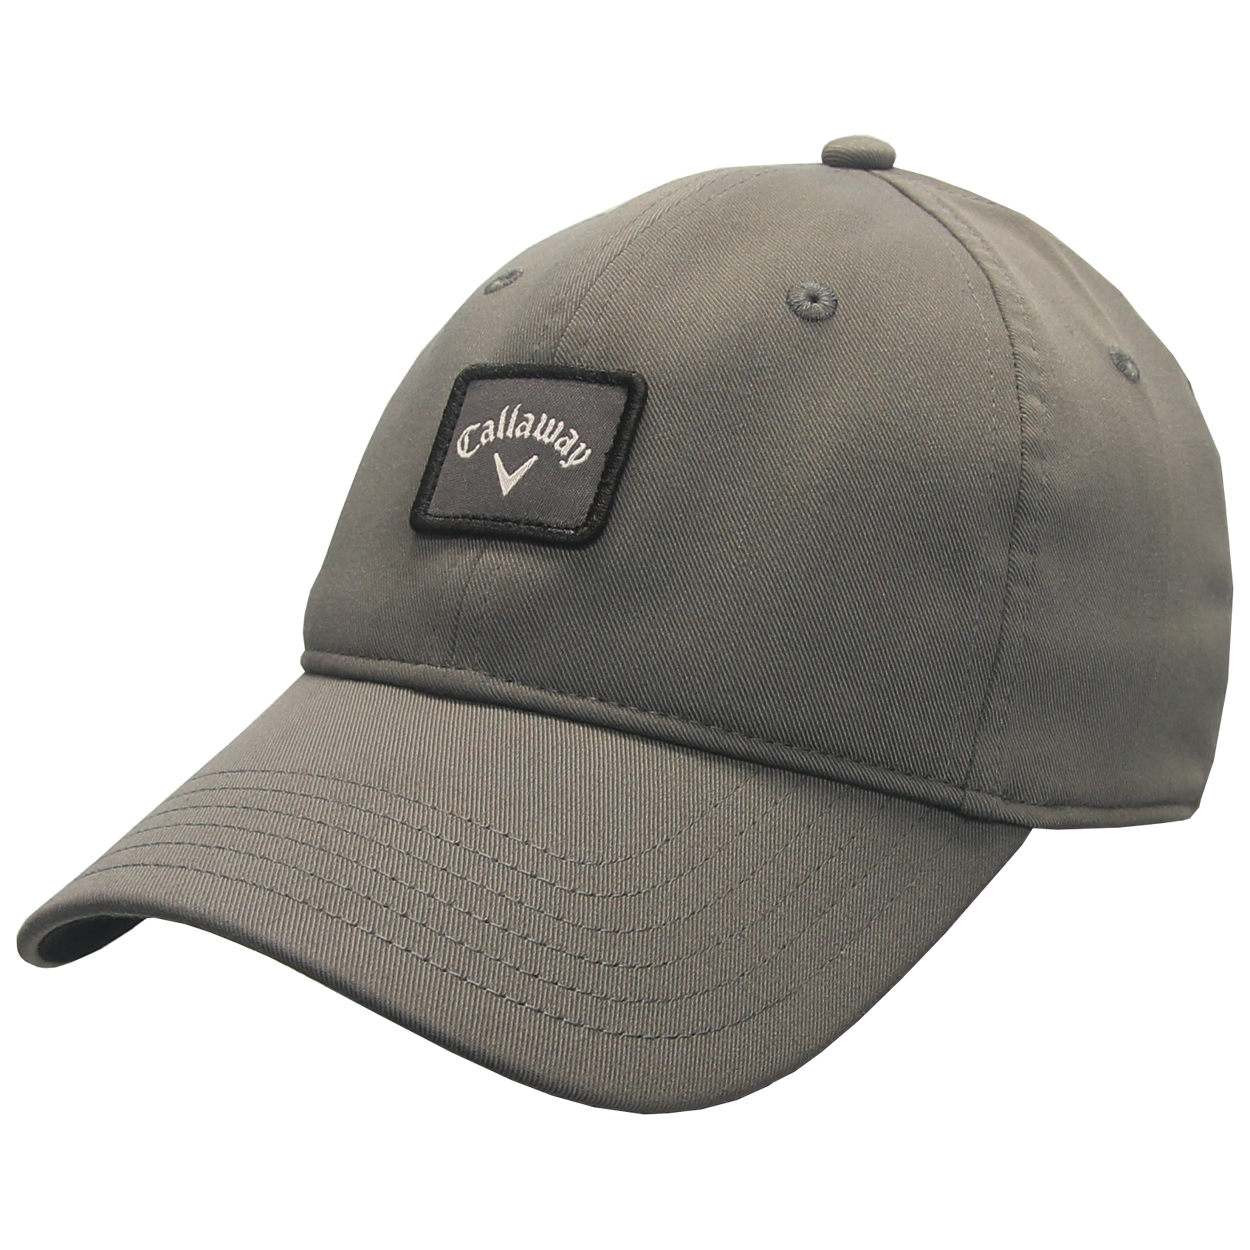 Callaway Golf Cg 82 Fitted Hat